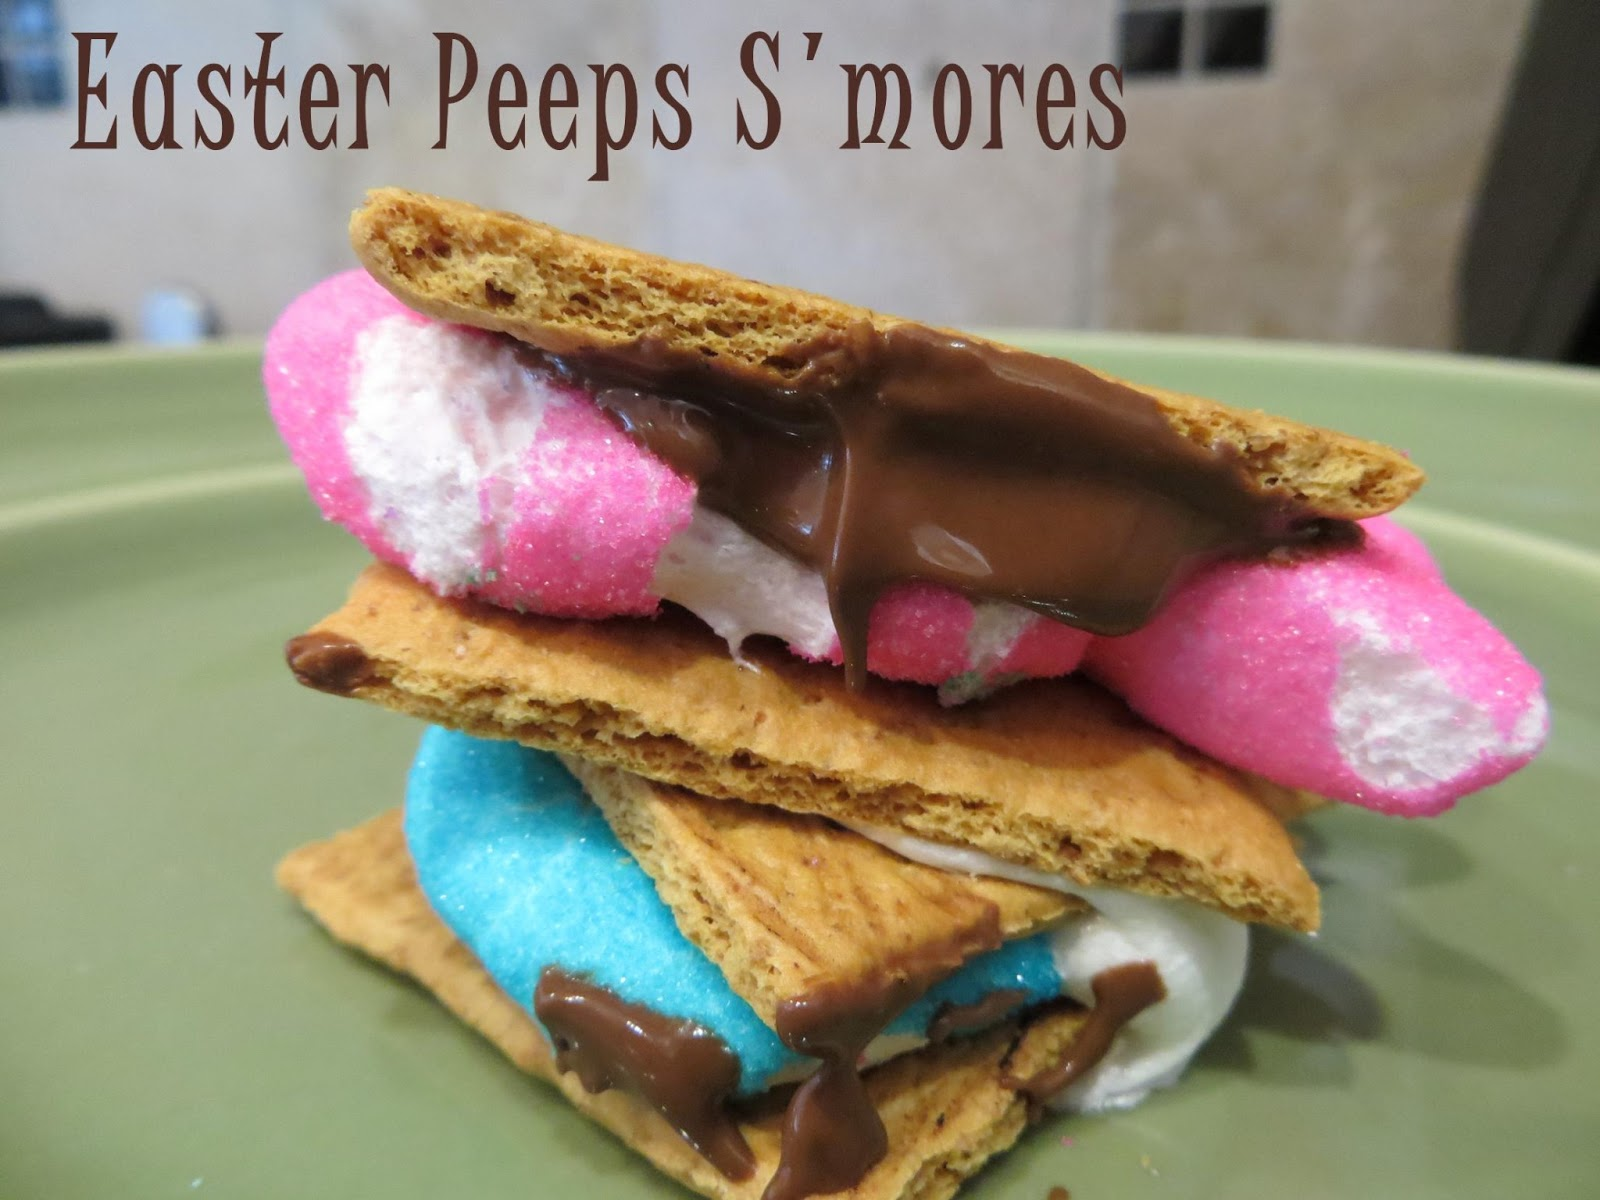 ... peeps s mores easter pie treats peeps s mores the peeps s mores for